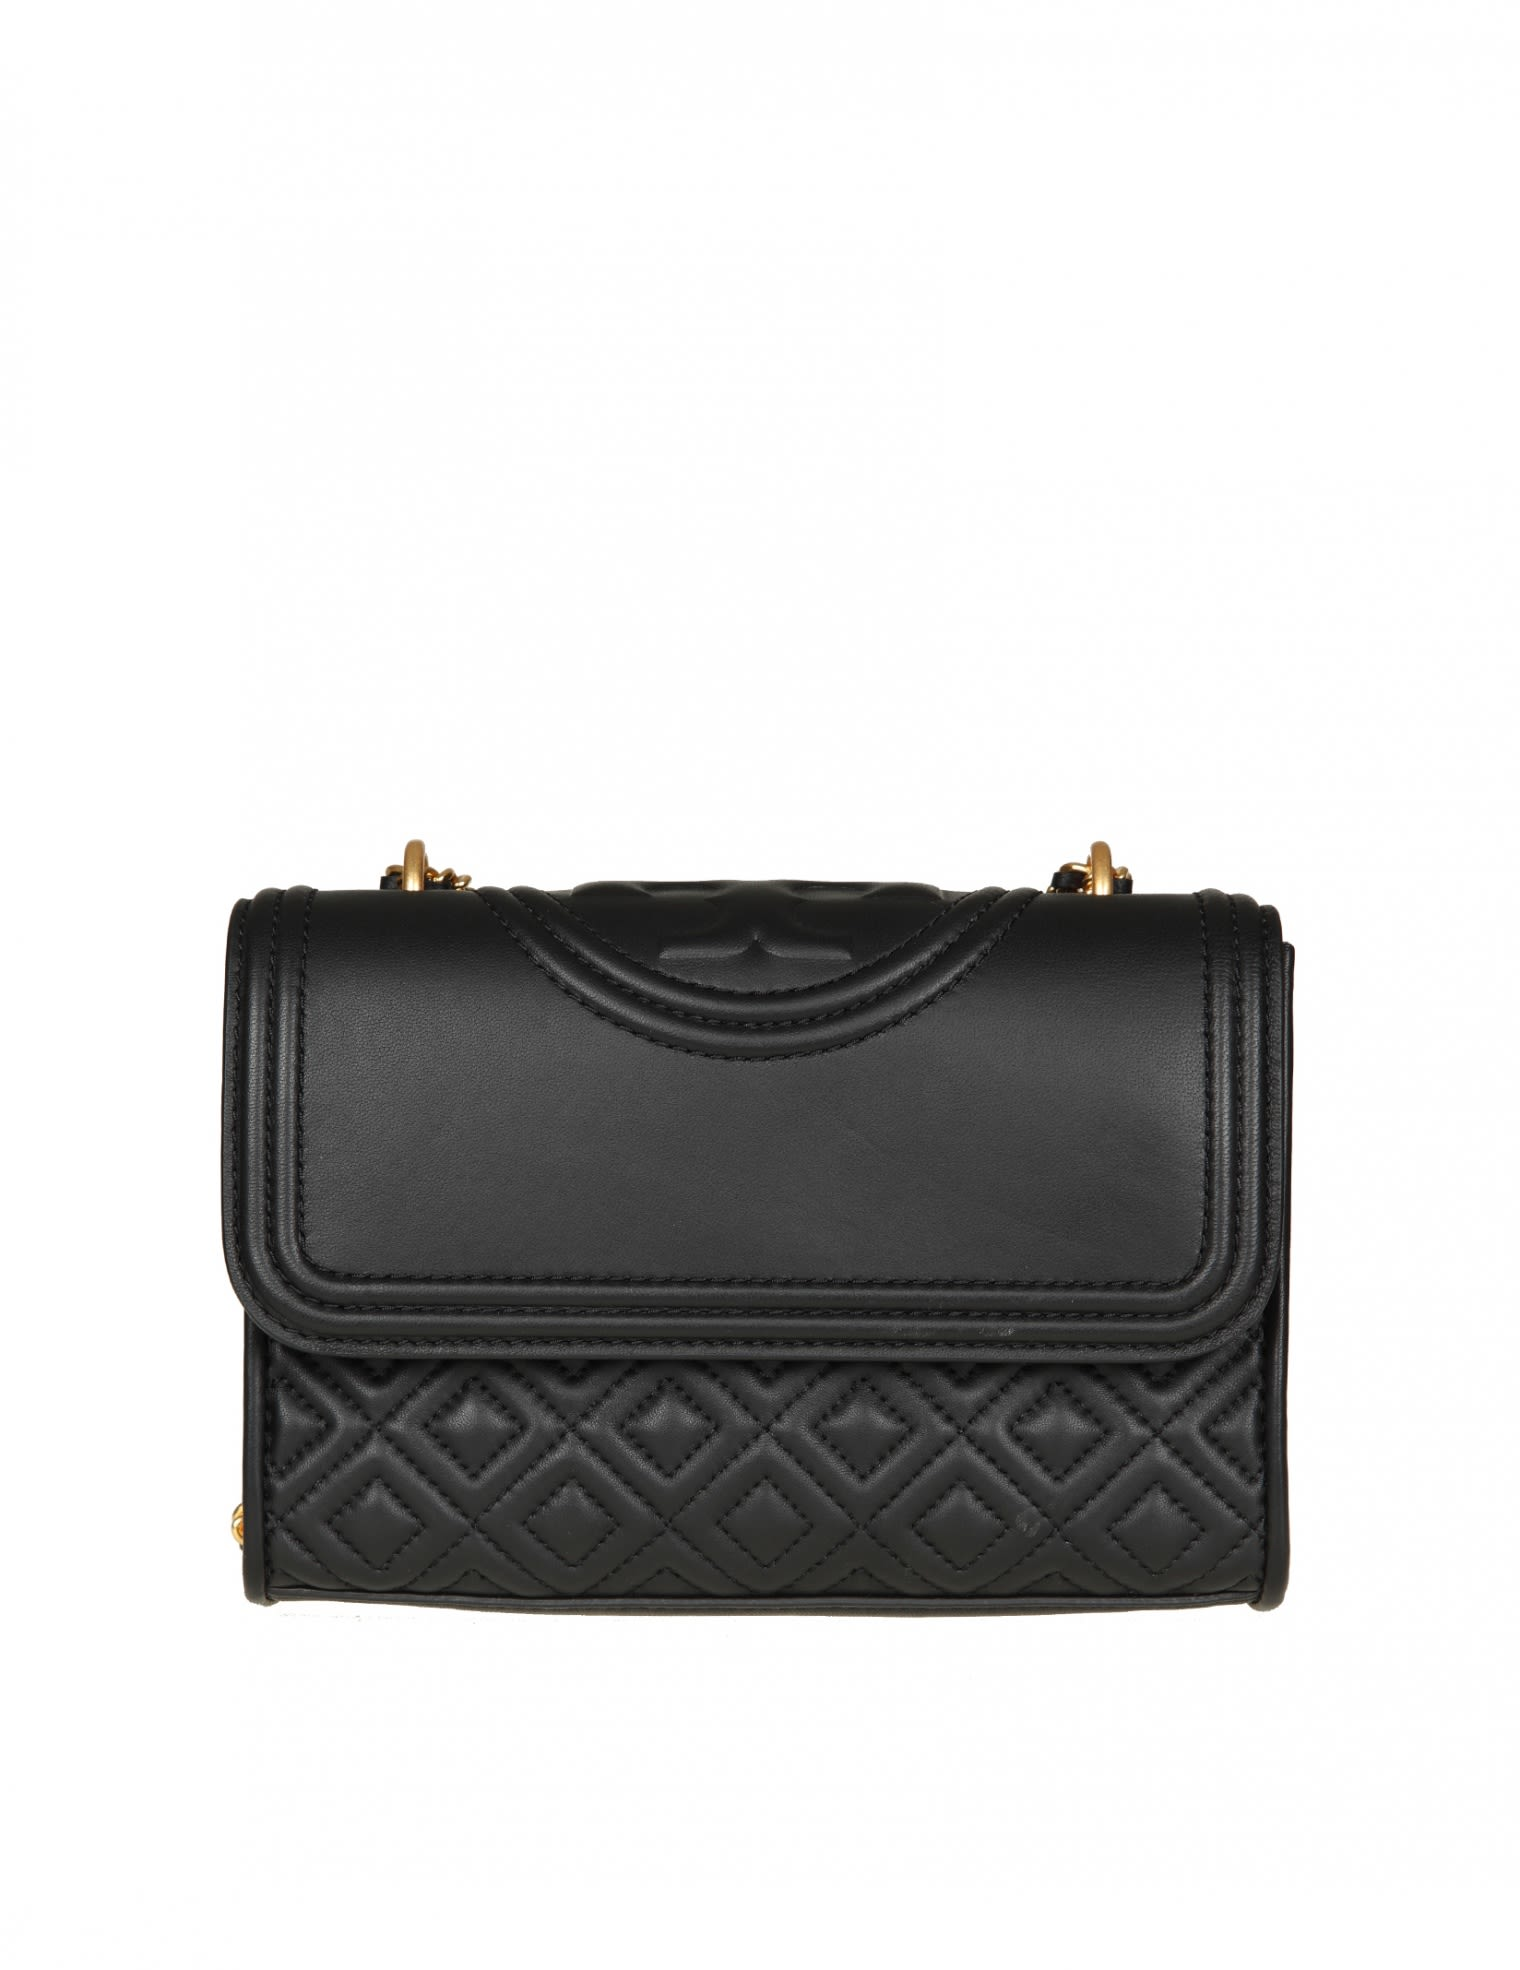 Tory Burch fleming Shoulder In Black Leather